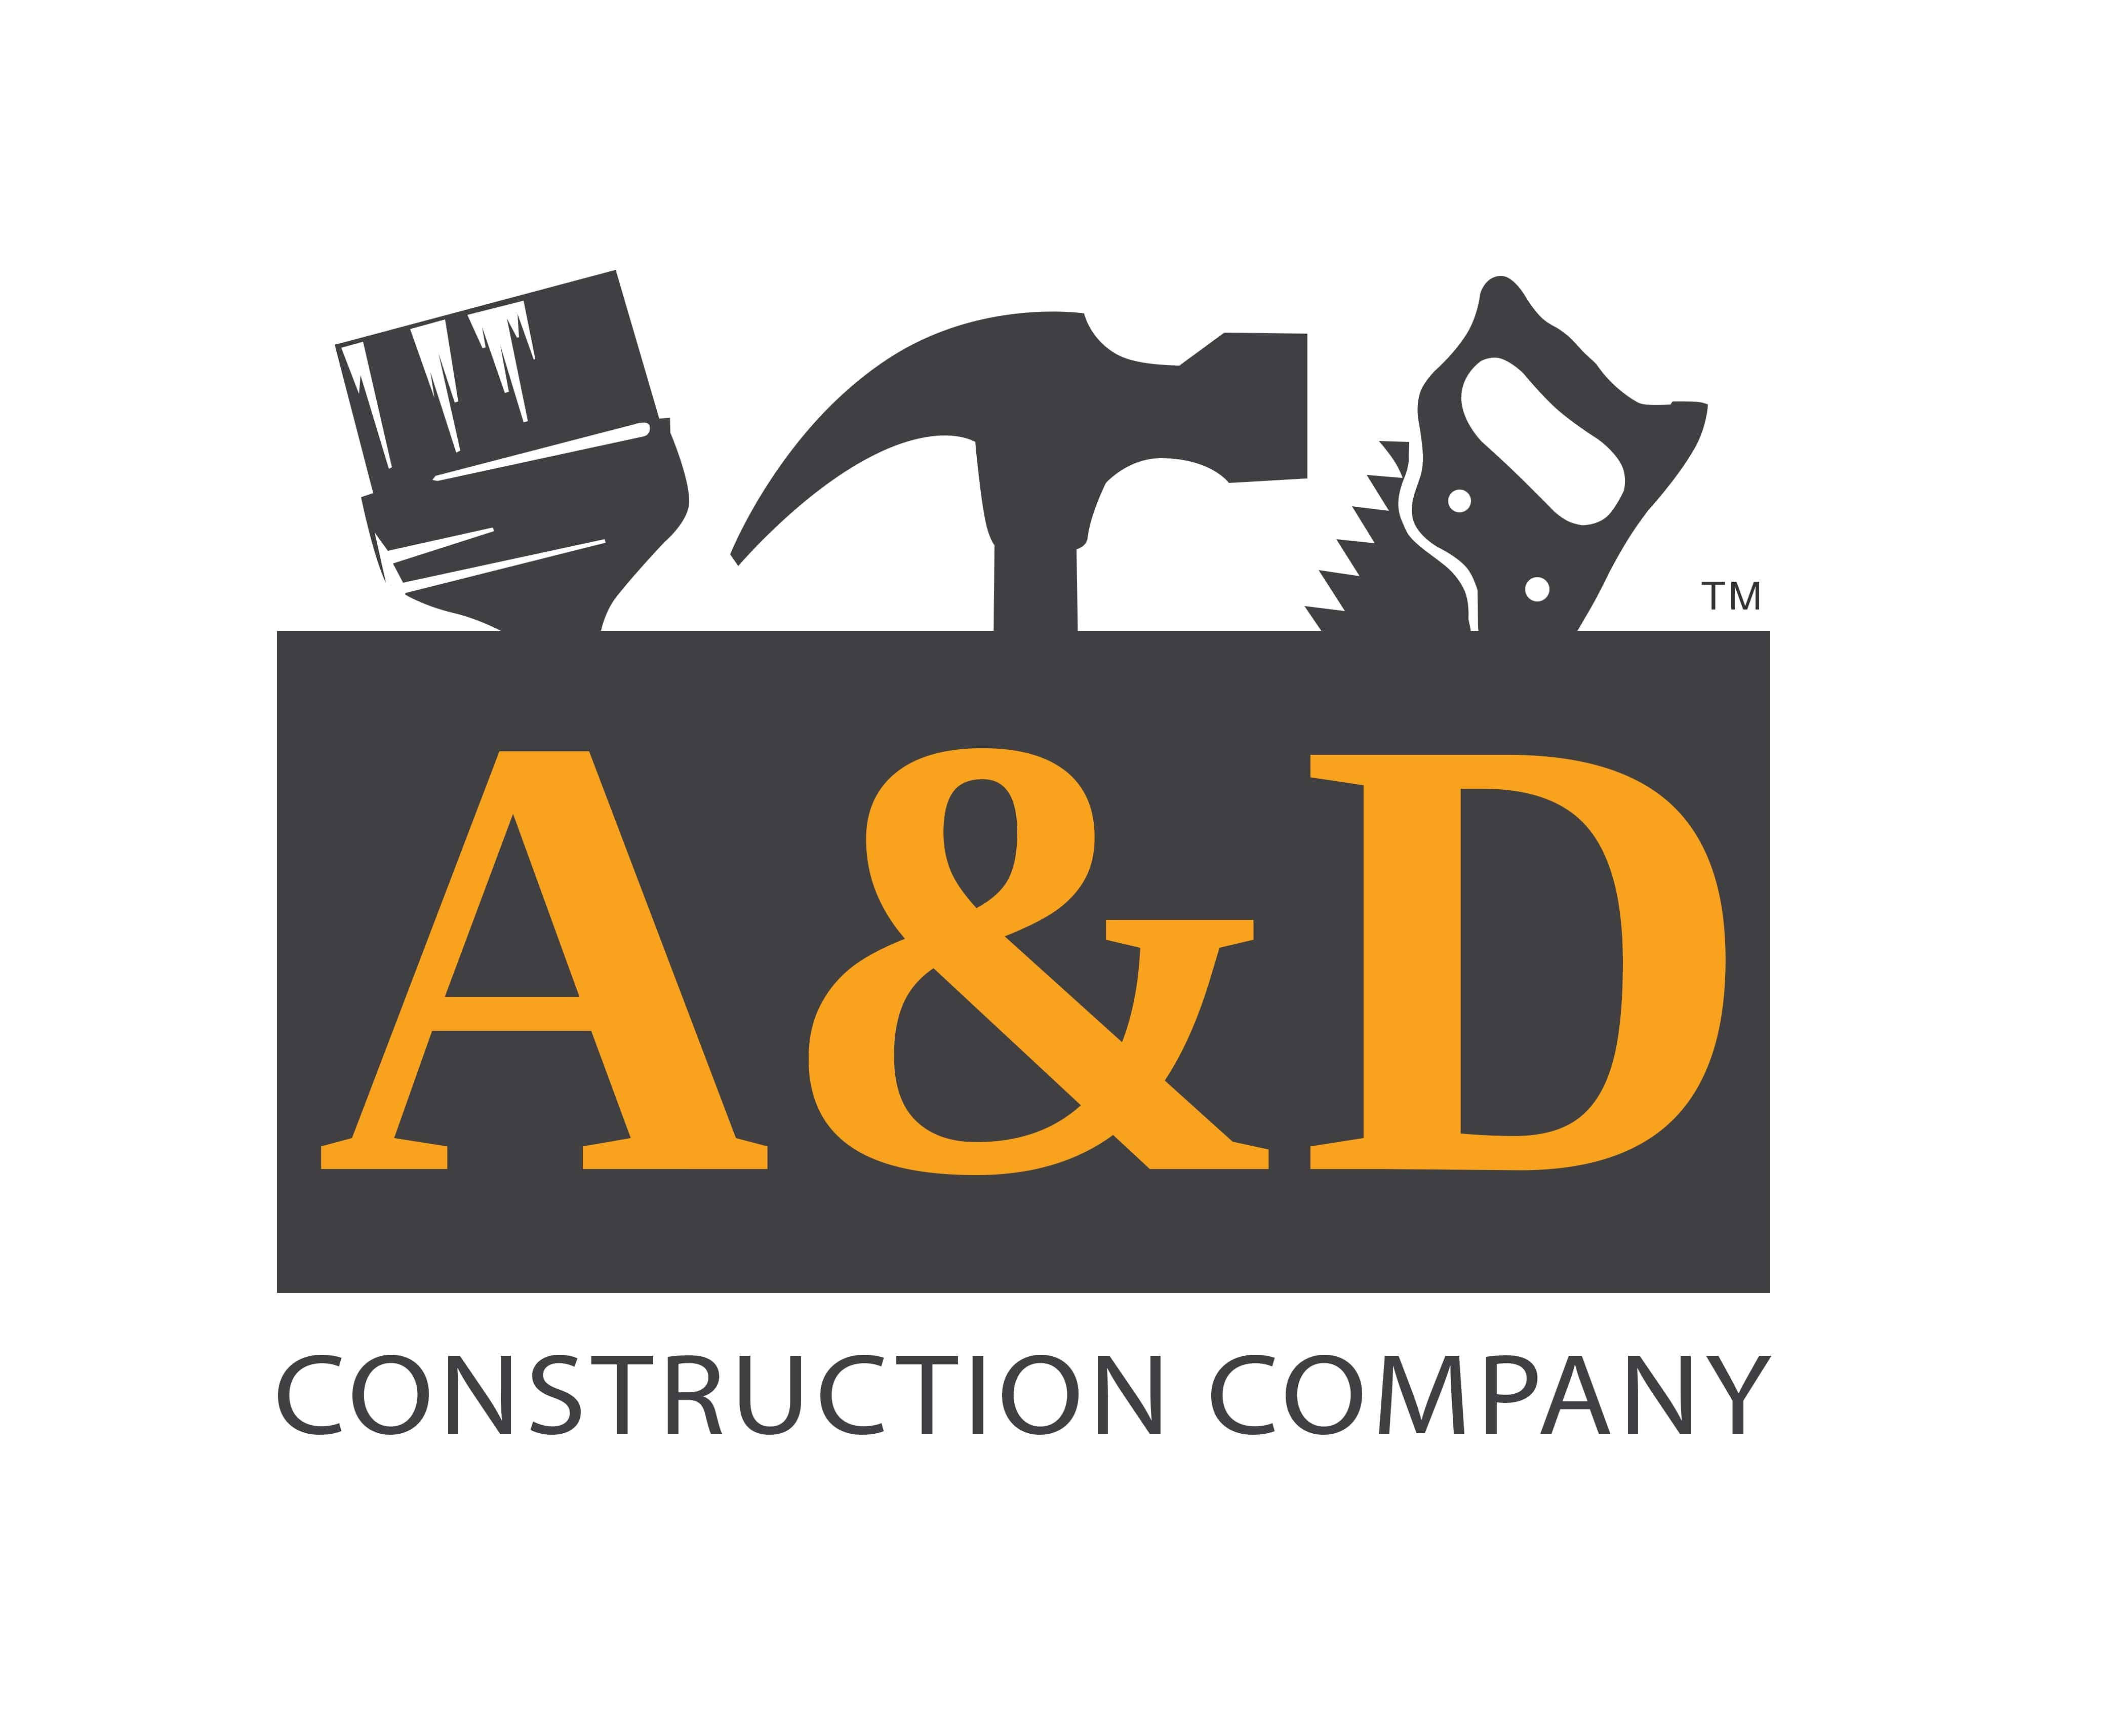 A&D Construction Company - Handyman Service in New York